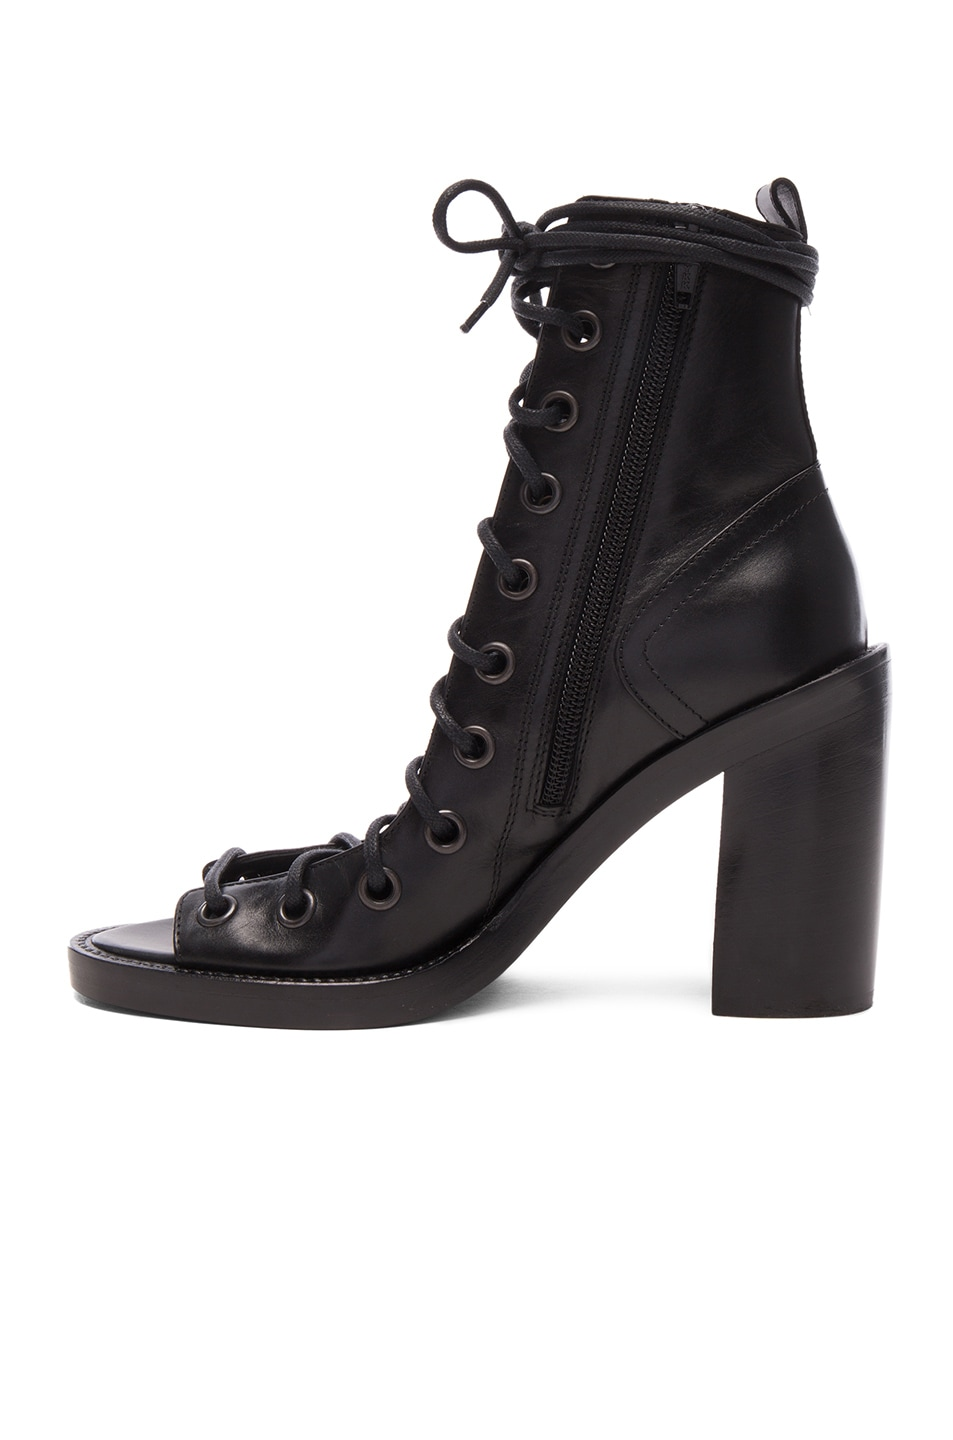 Image 5 of Ann Demeulemeester Lace Up Heels in Black